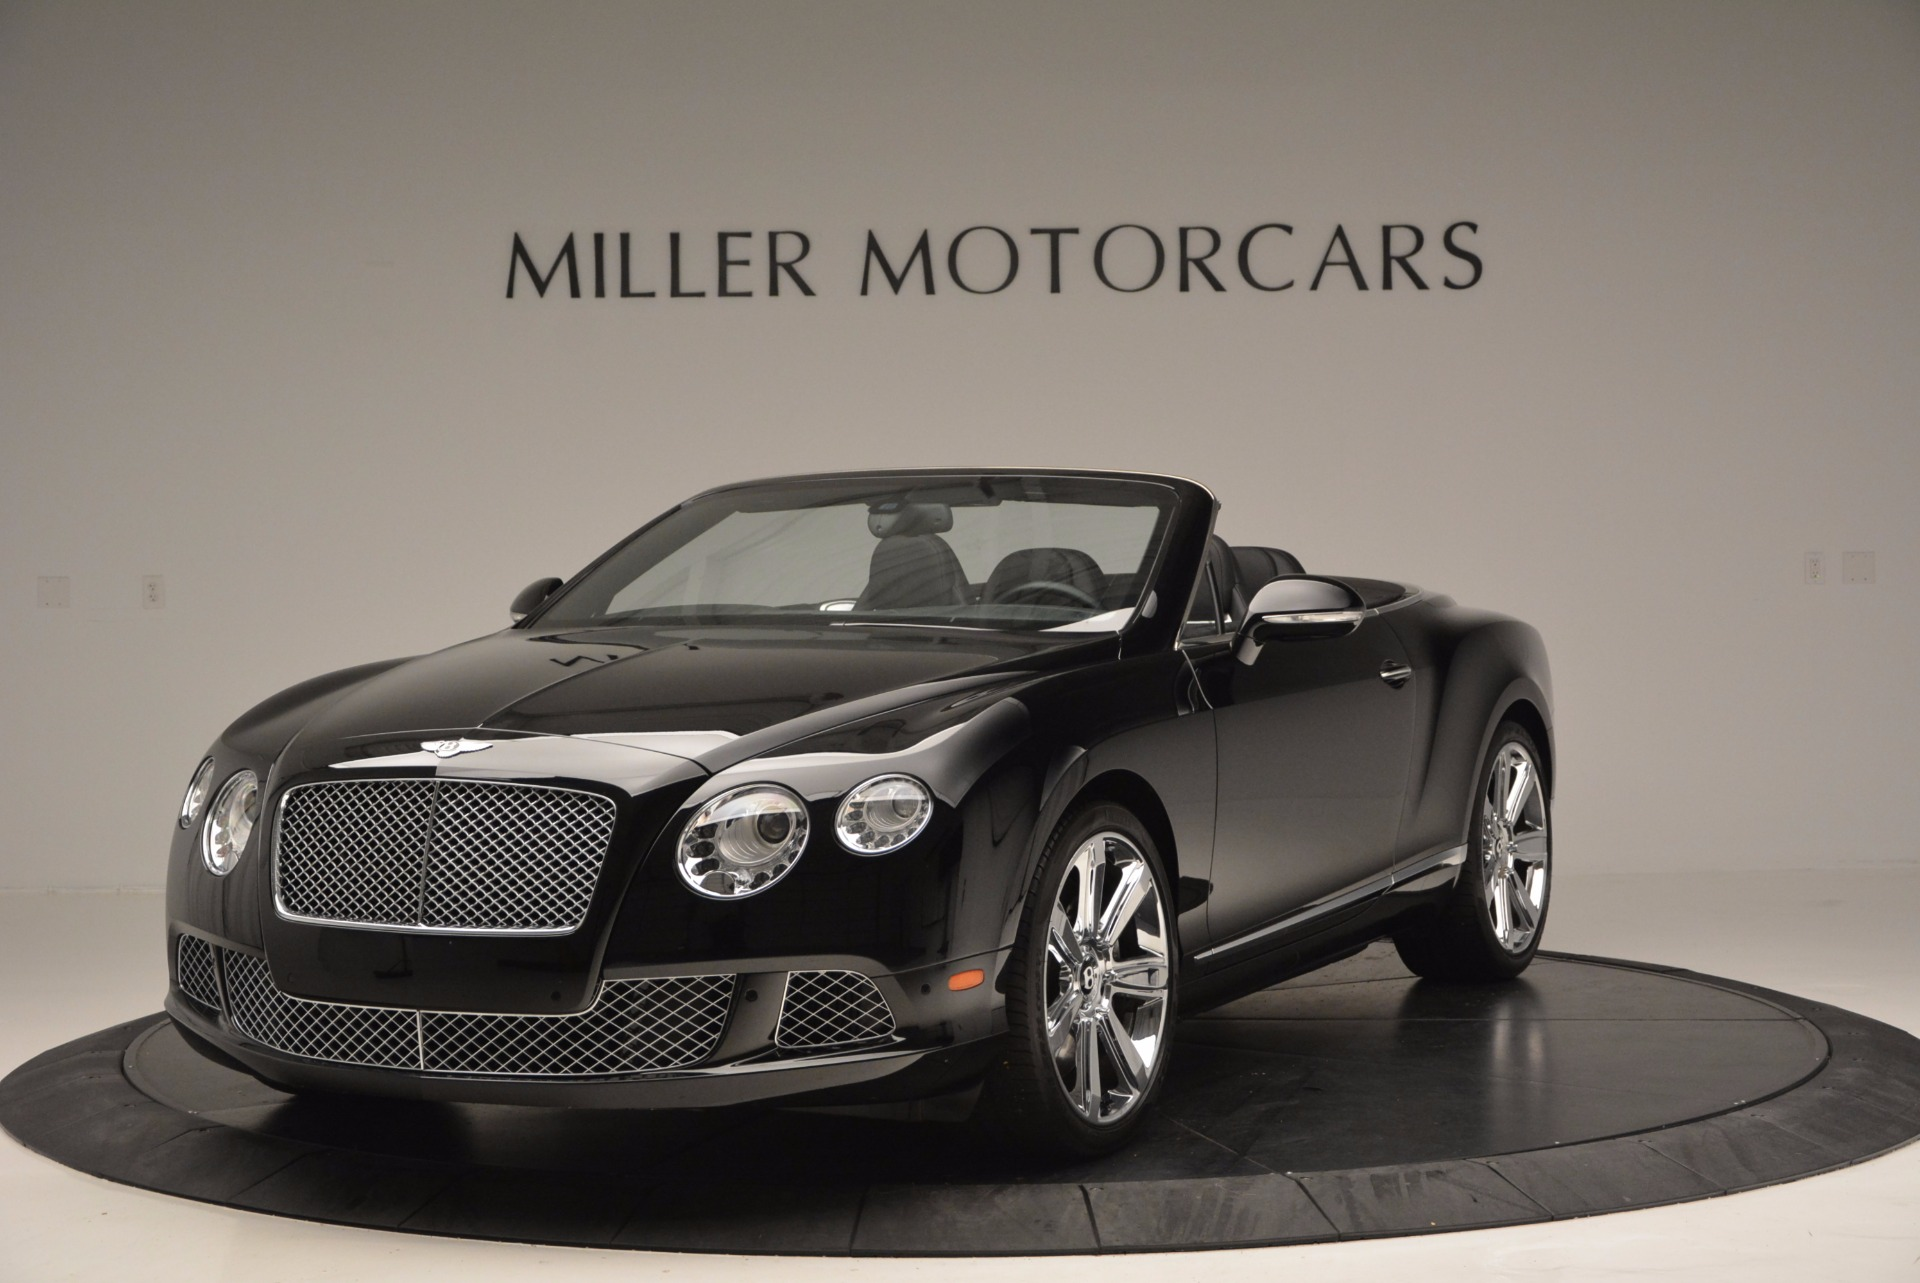 Used 2013 Bentley Continental GTC for sale Sold at Bugatti of Greenwich in Greenwich CT 06830 1